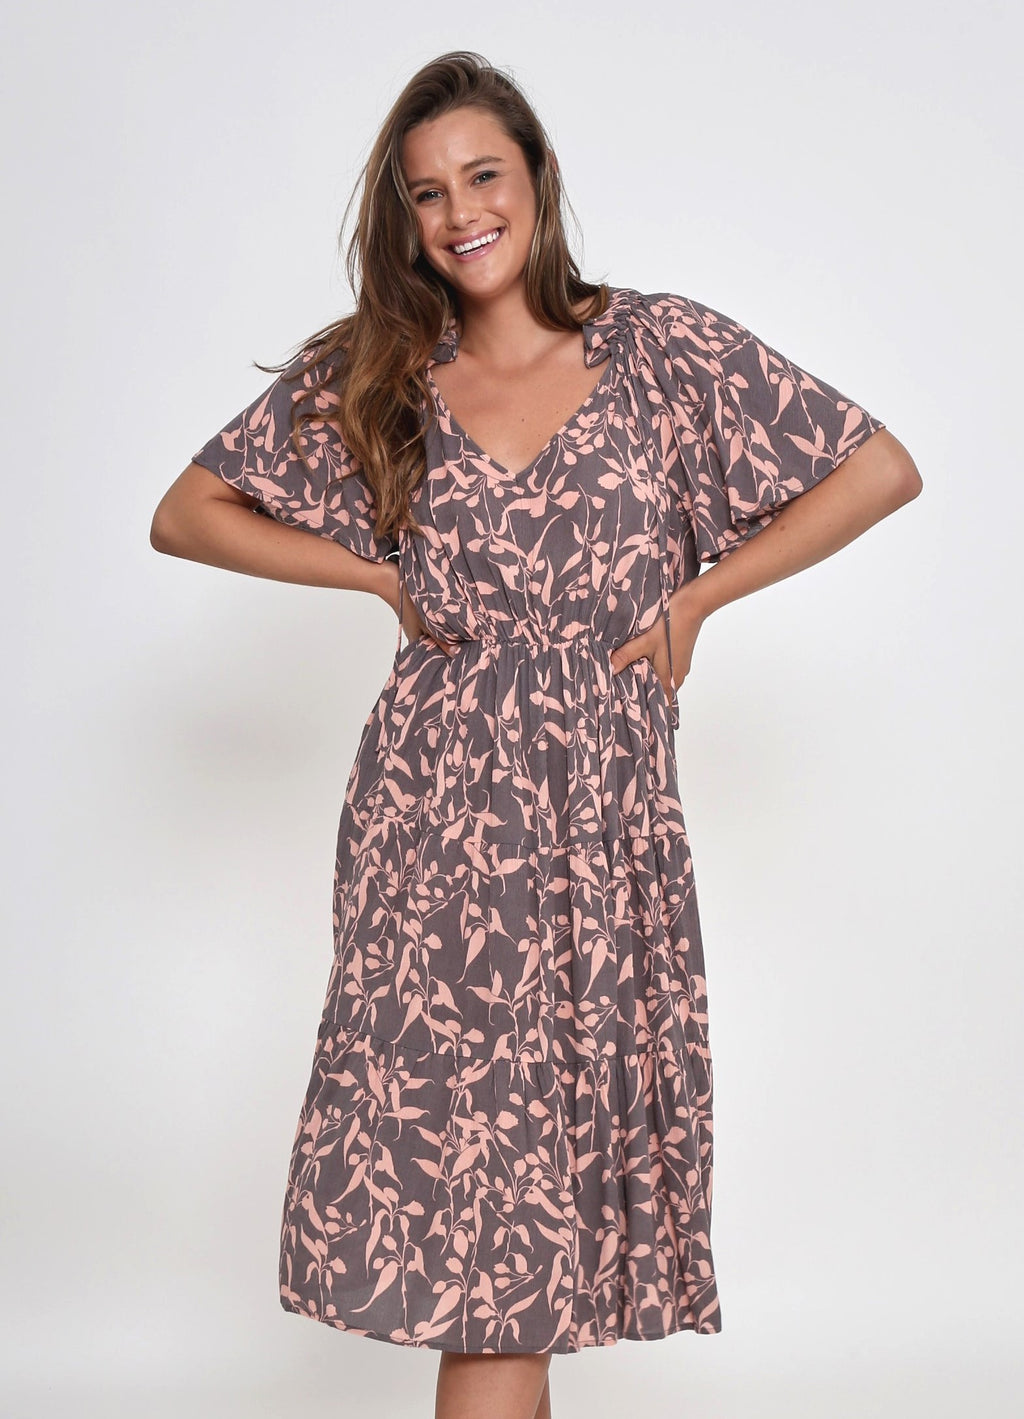 NEW - KARINA DRESS - MOCHA/PINK